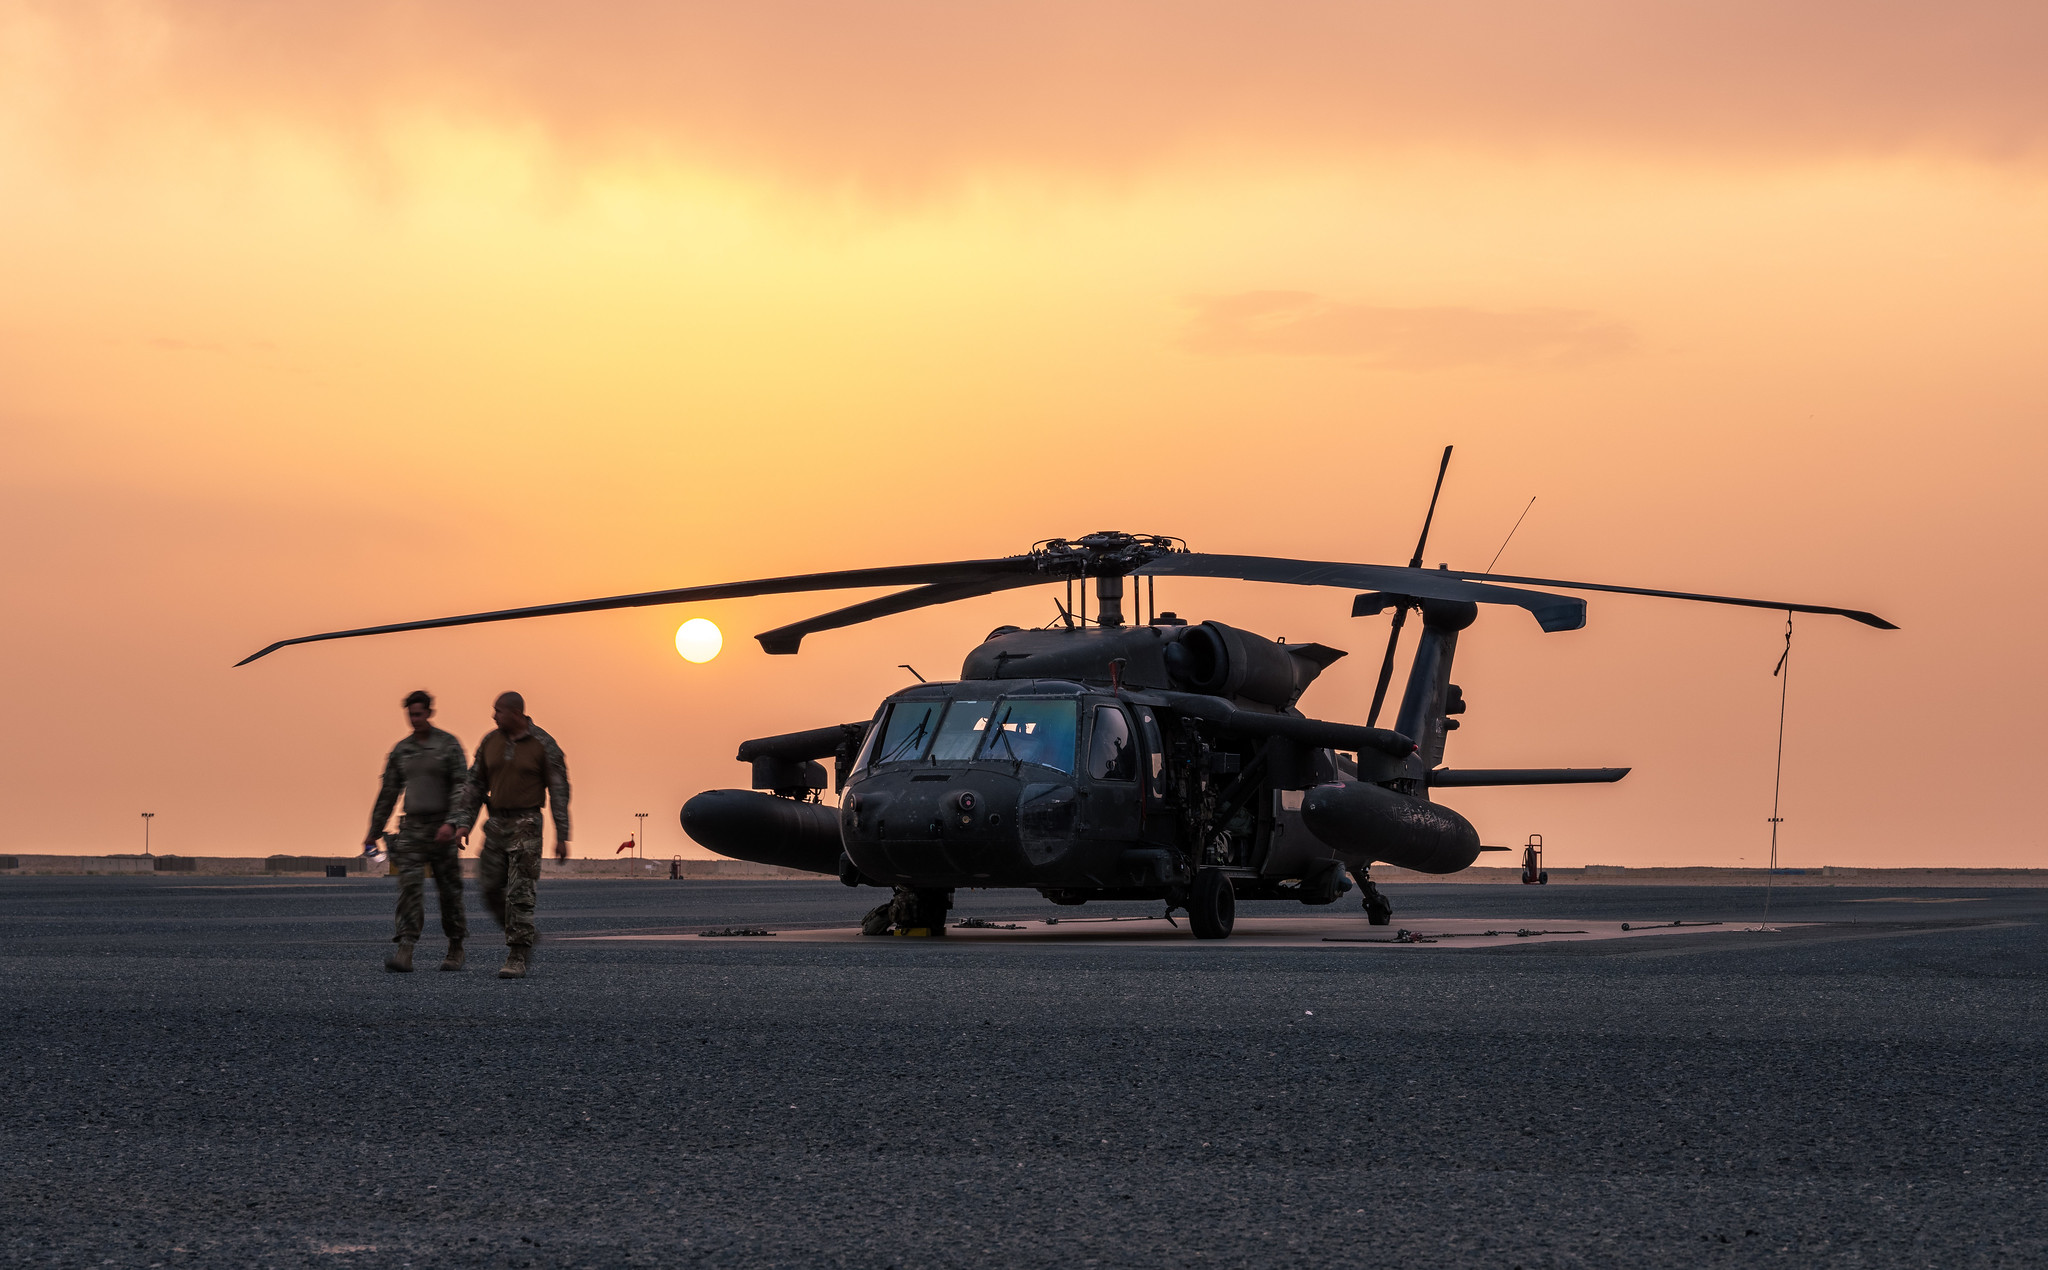 A Task Force Phoenix UH-60 Black Hawk helicopter, from the 40th Combat Aviation Brigade, is prepped for a mission in support of Operation Inherent Resolve in the Middle East, May 22, 2021. (2nd Lt. Kyle Gallagher/Army National Guard)